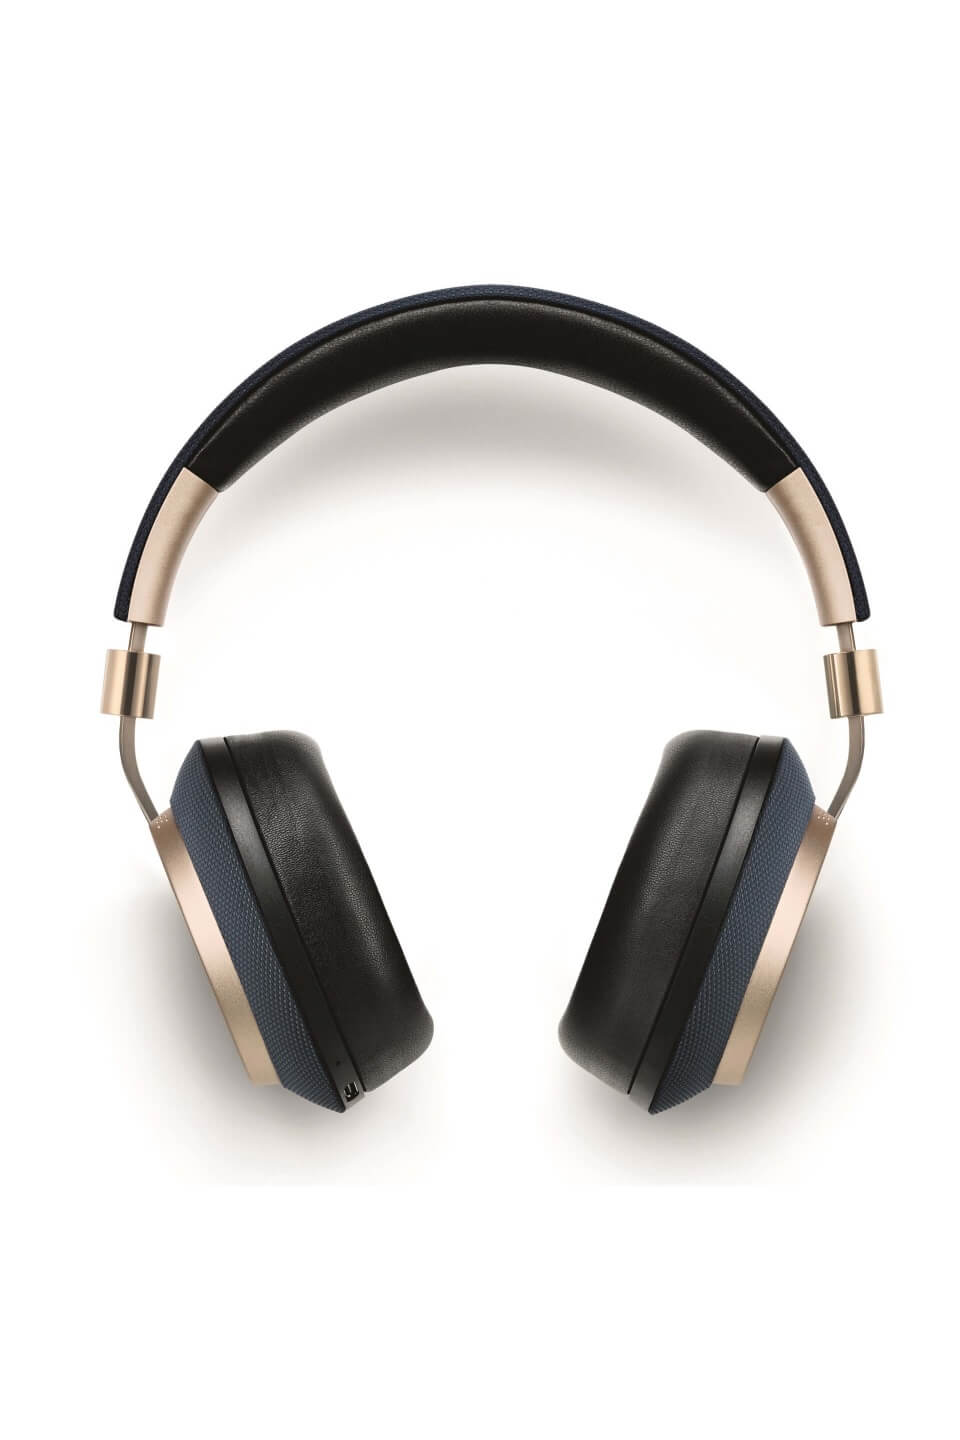 Bowers & Wilkins soft gold - Draufsicht